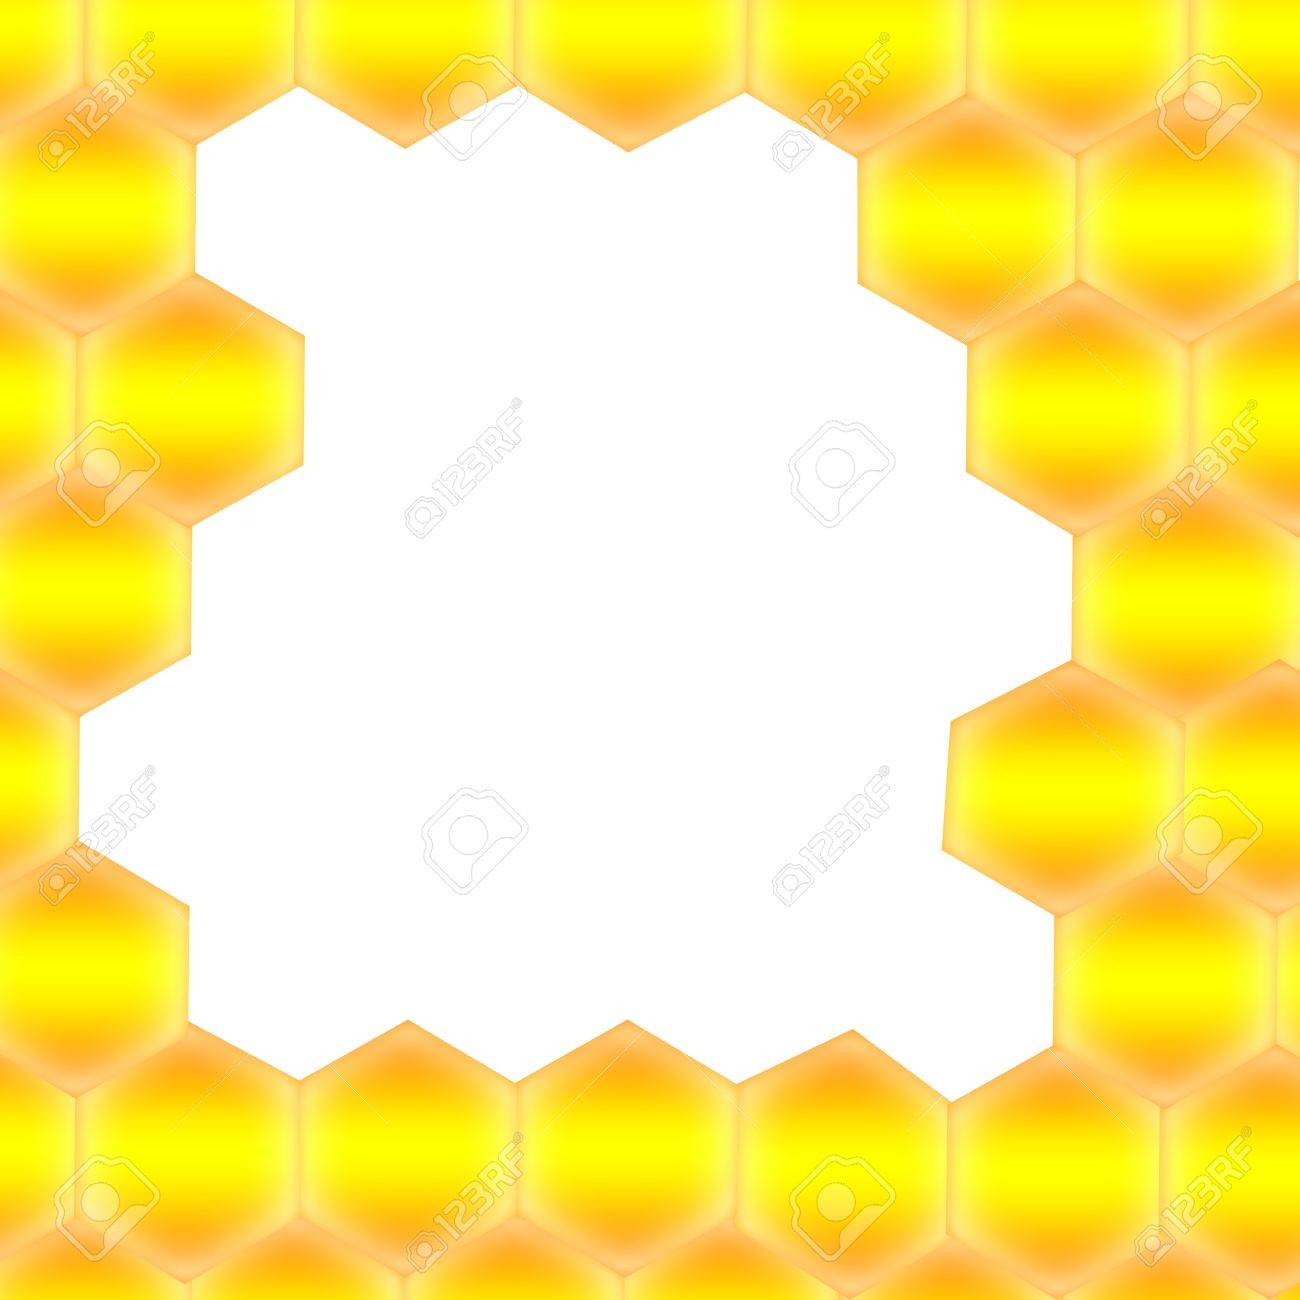 Honeycomb with frame for text - Abstract seamless pattern of honeycomb form. Background for your design. Stock Photo - 12027025